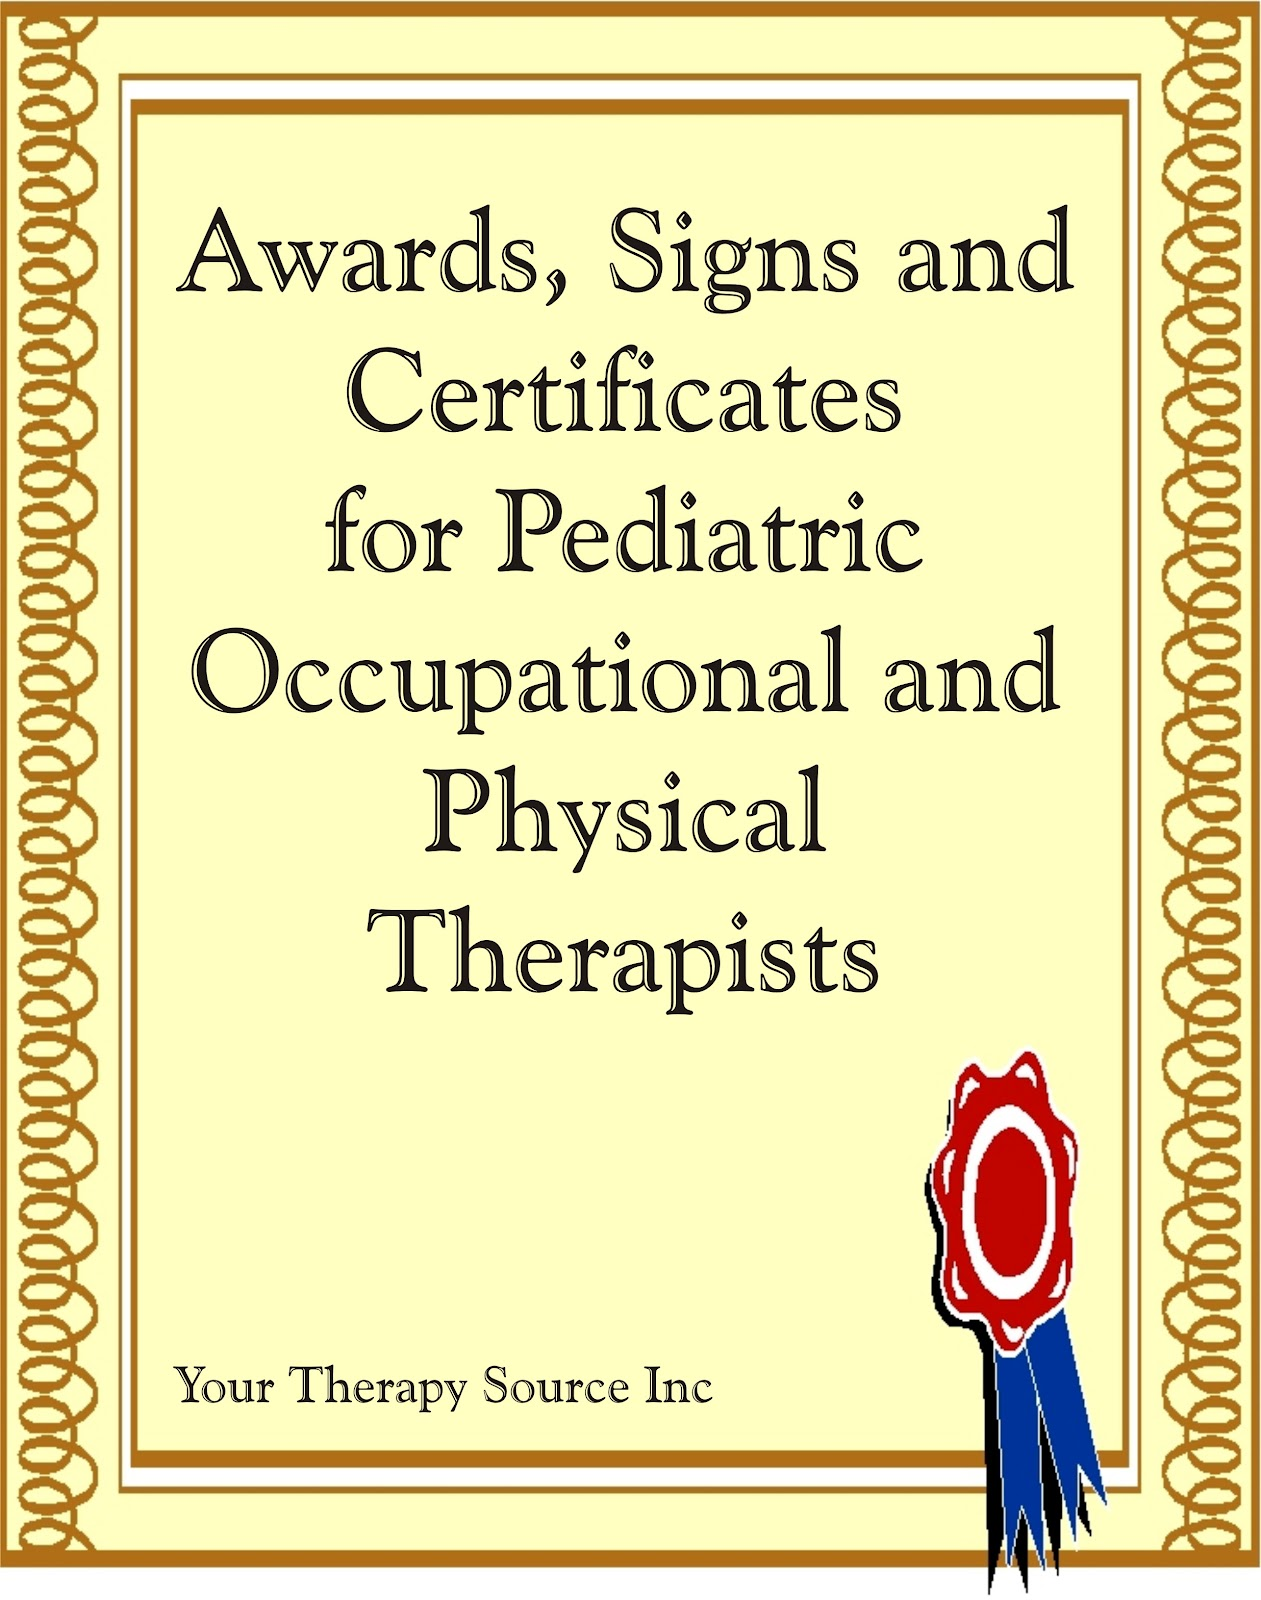 how to become a pediatric occupational therapist australia